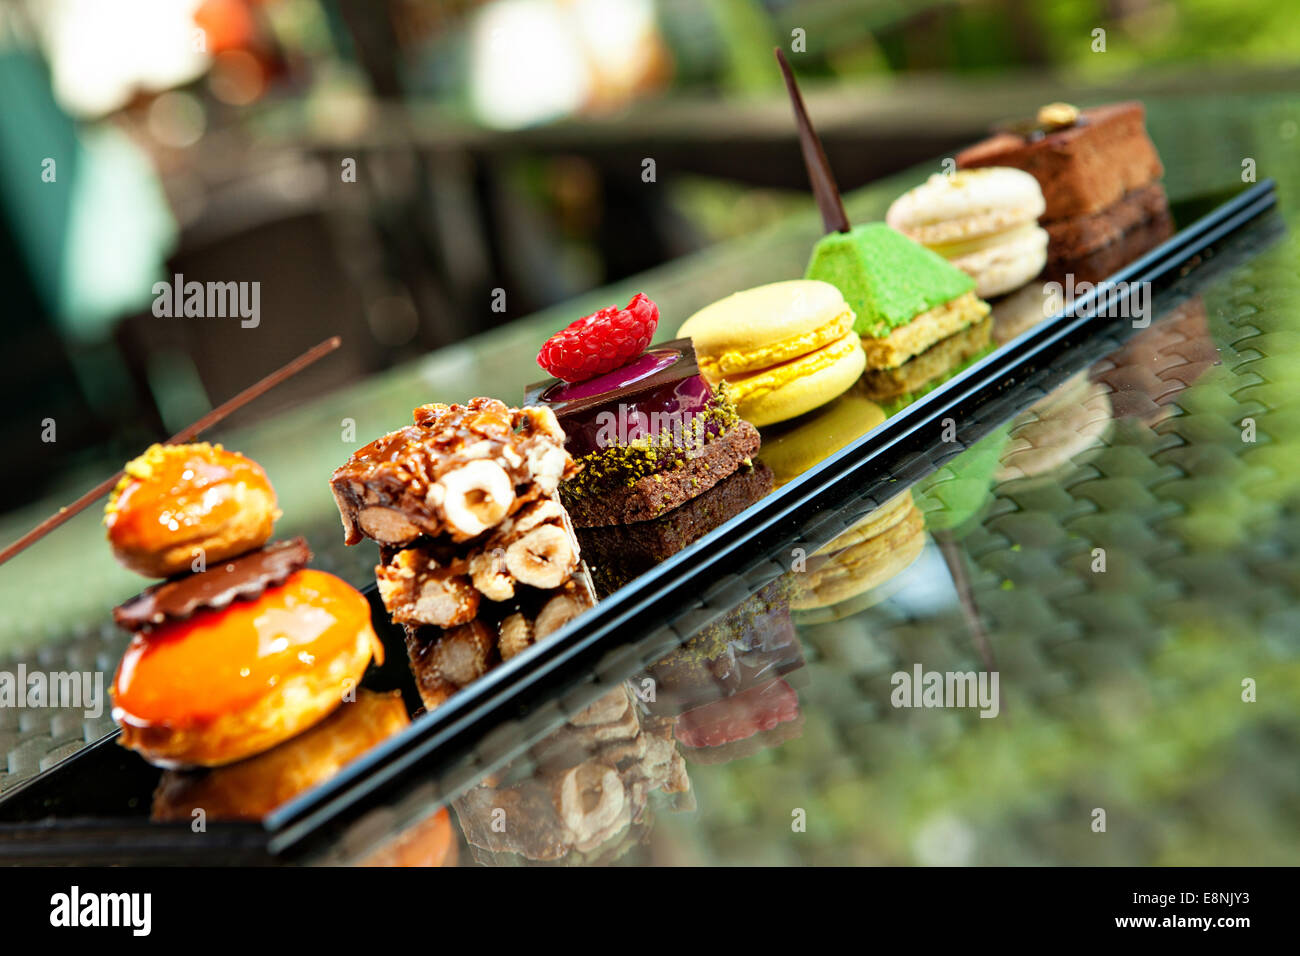 Gorgeous view of different cakes and biscuits, served in outdoors - Stock Image